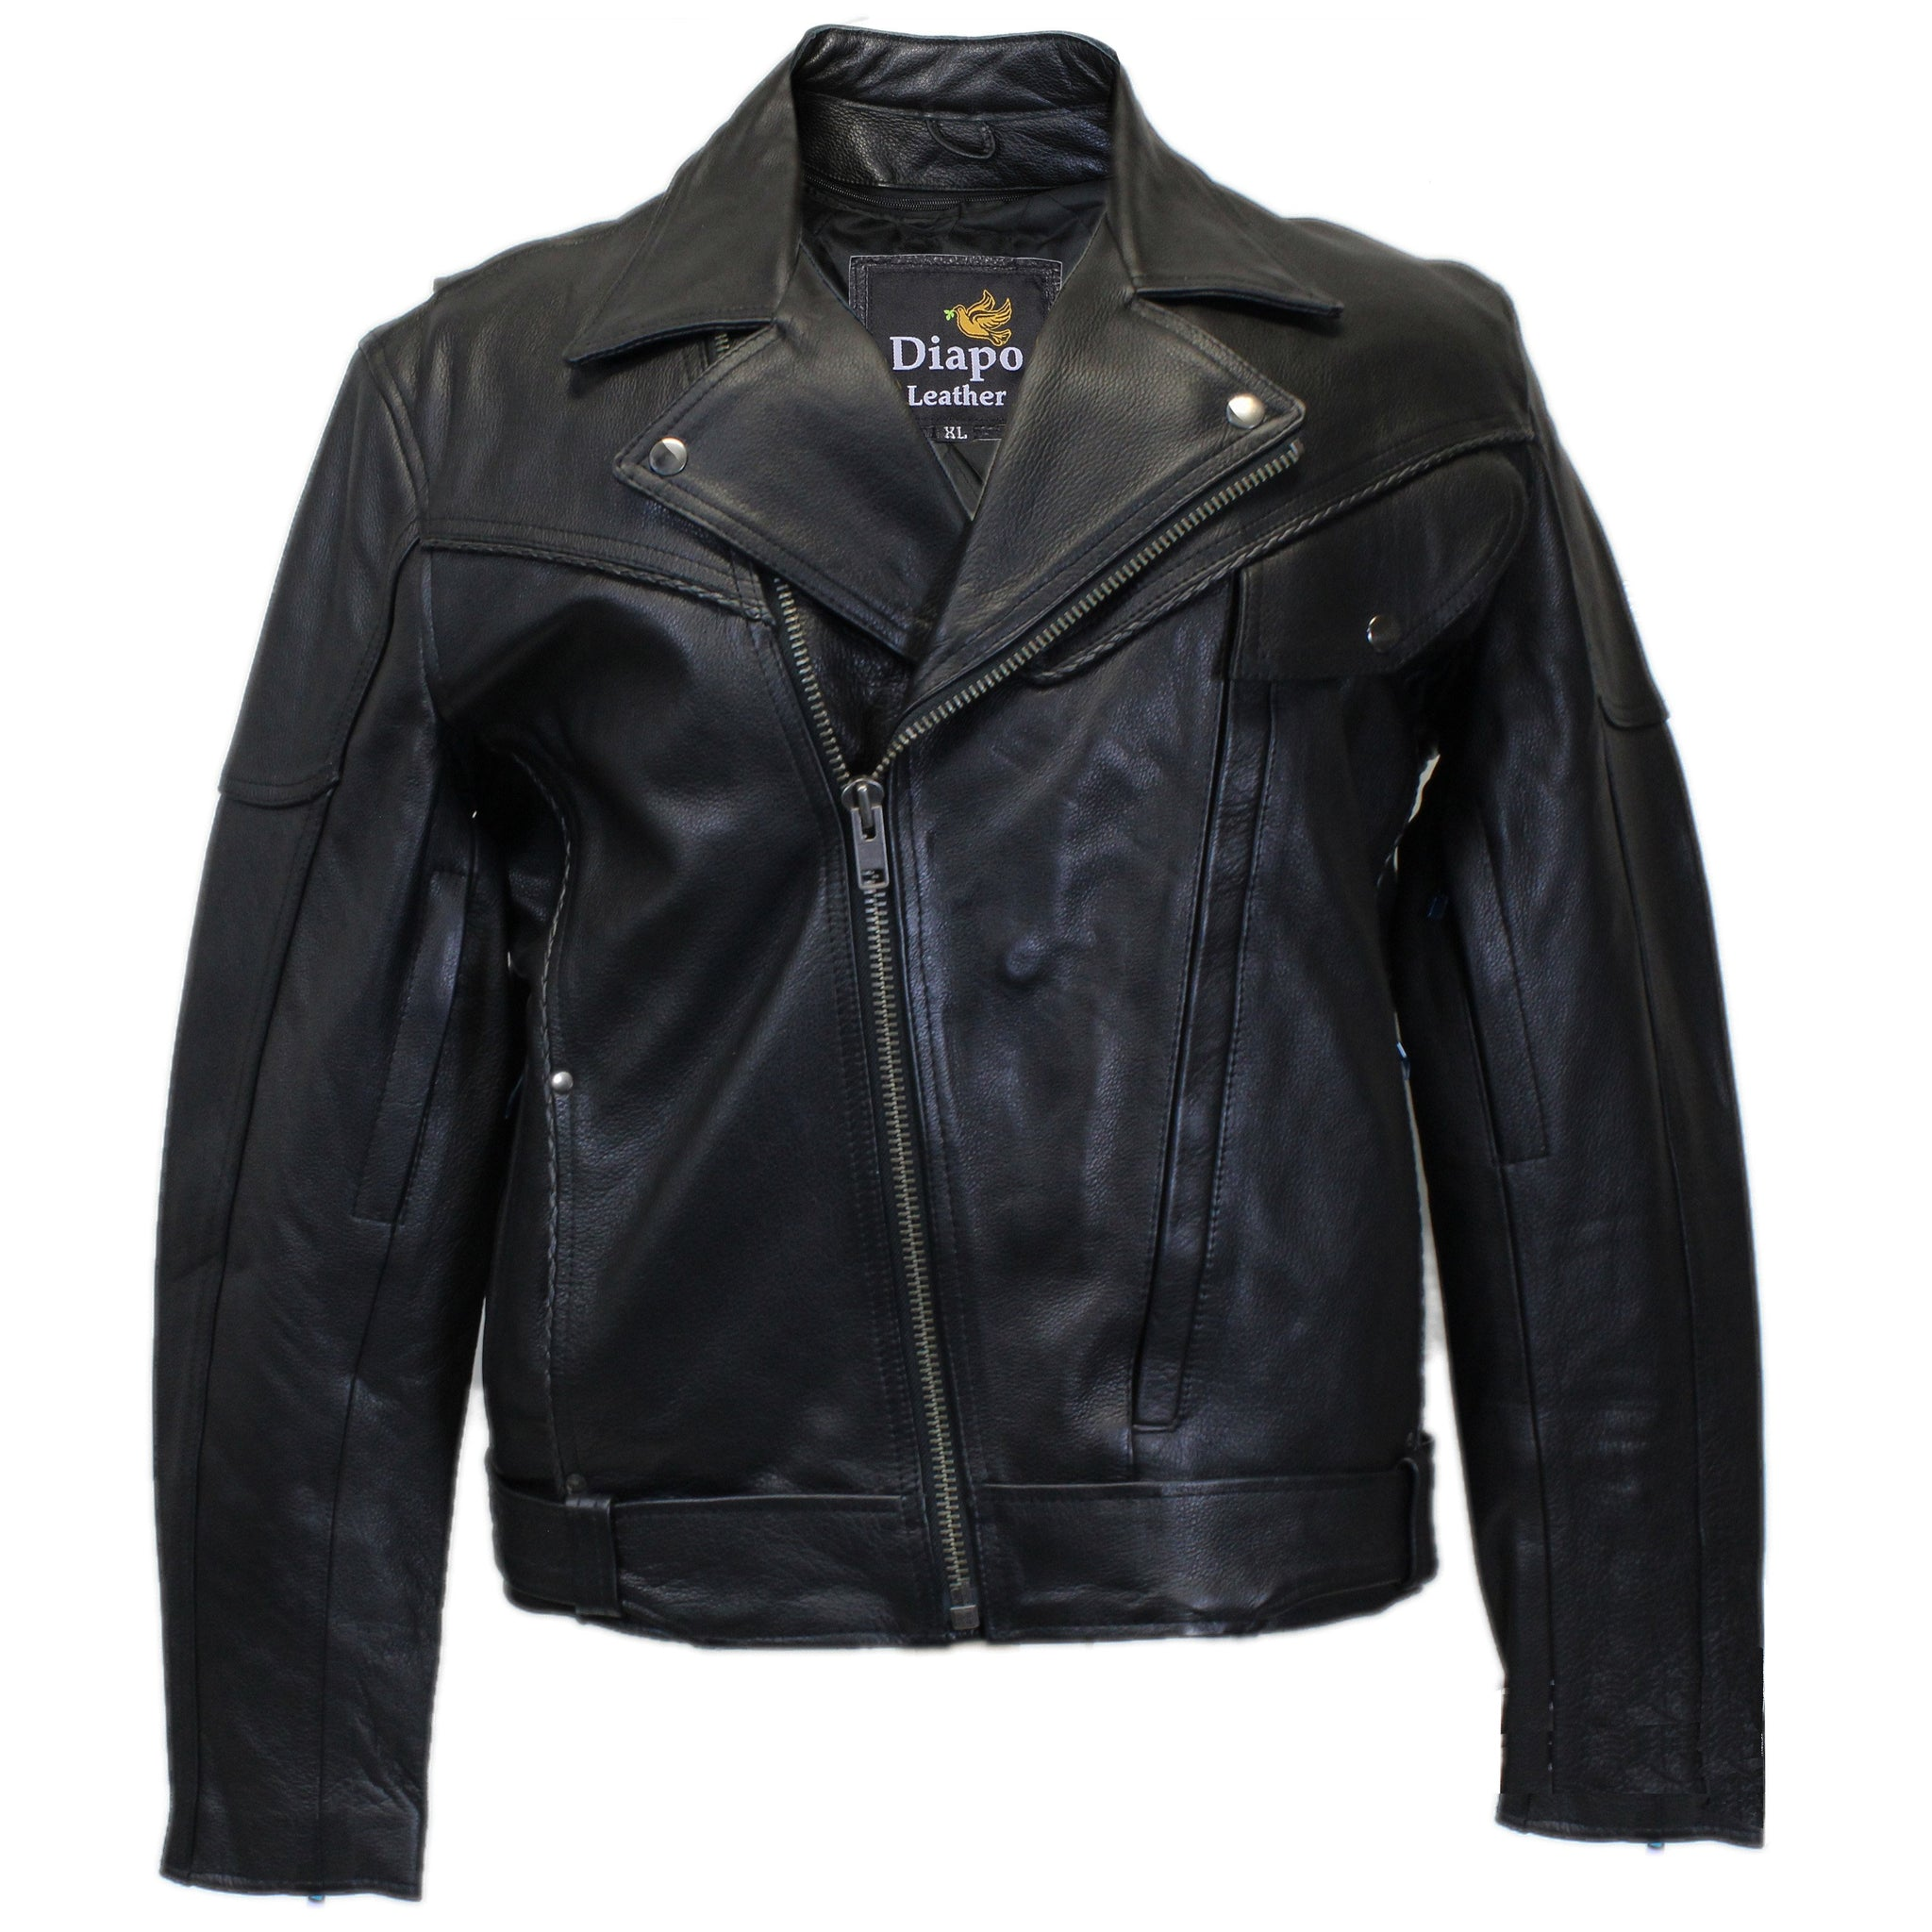 Diapo Leather Men's All Season's Motorcycle Cowhide Leather Jacket   DL - MMLJ1171